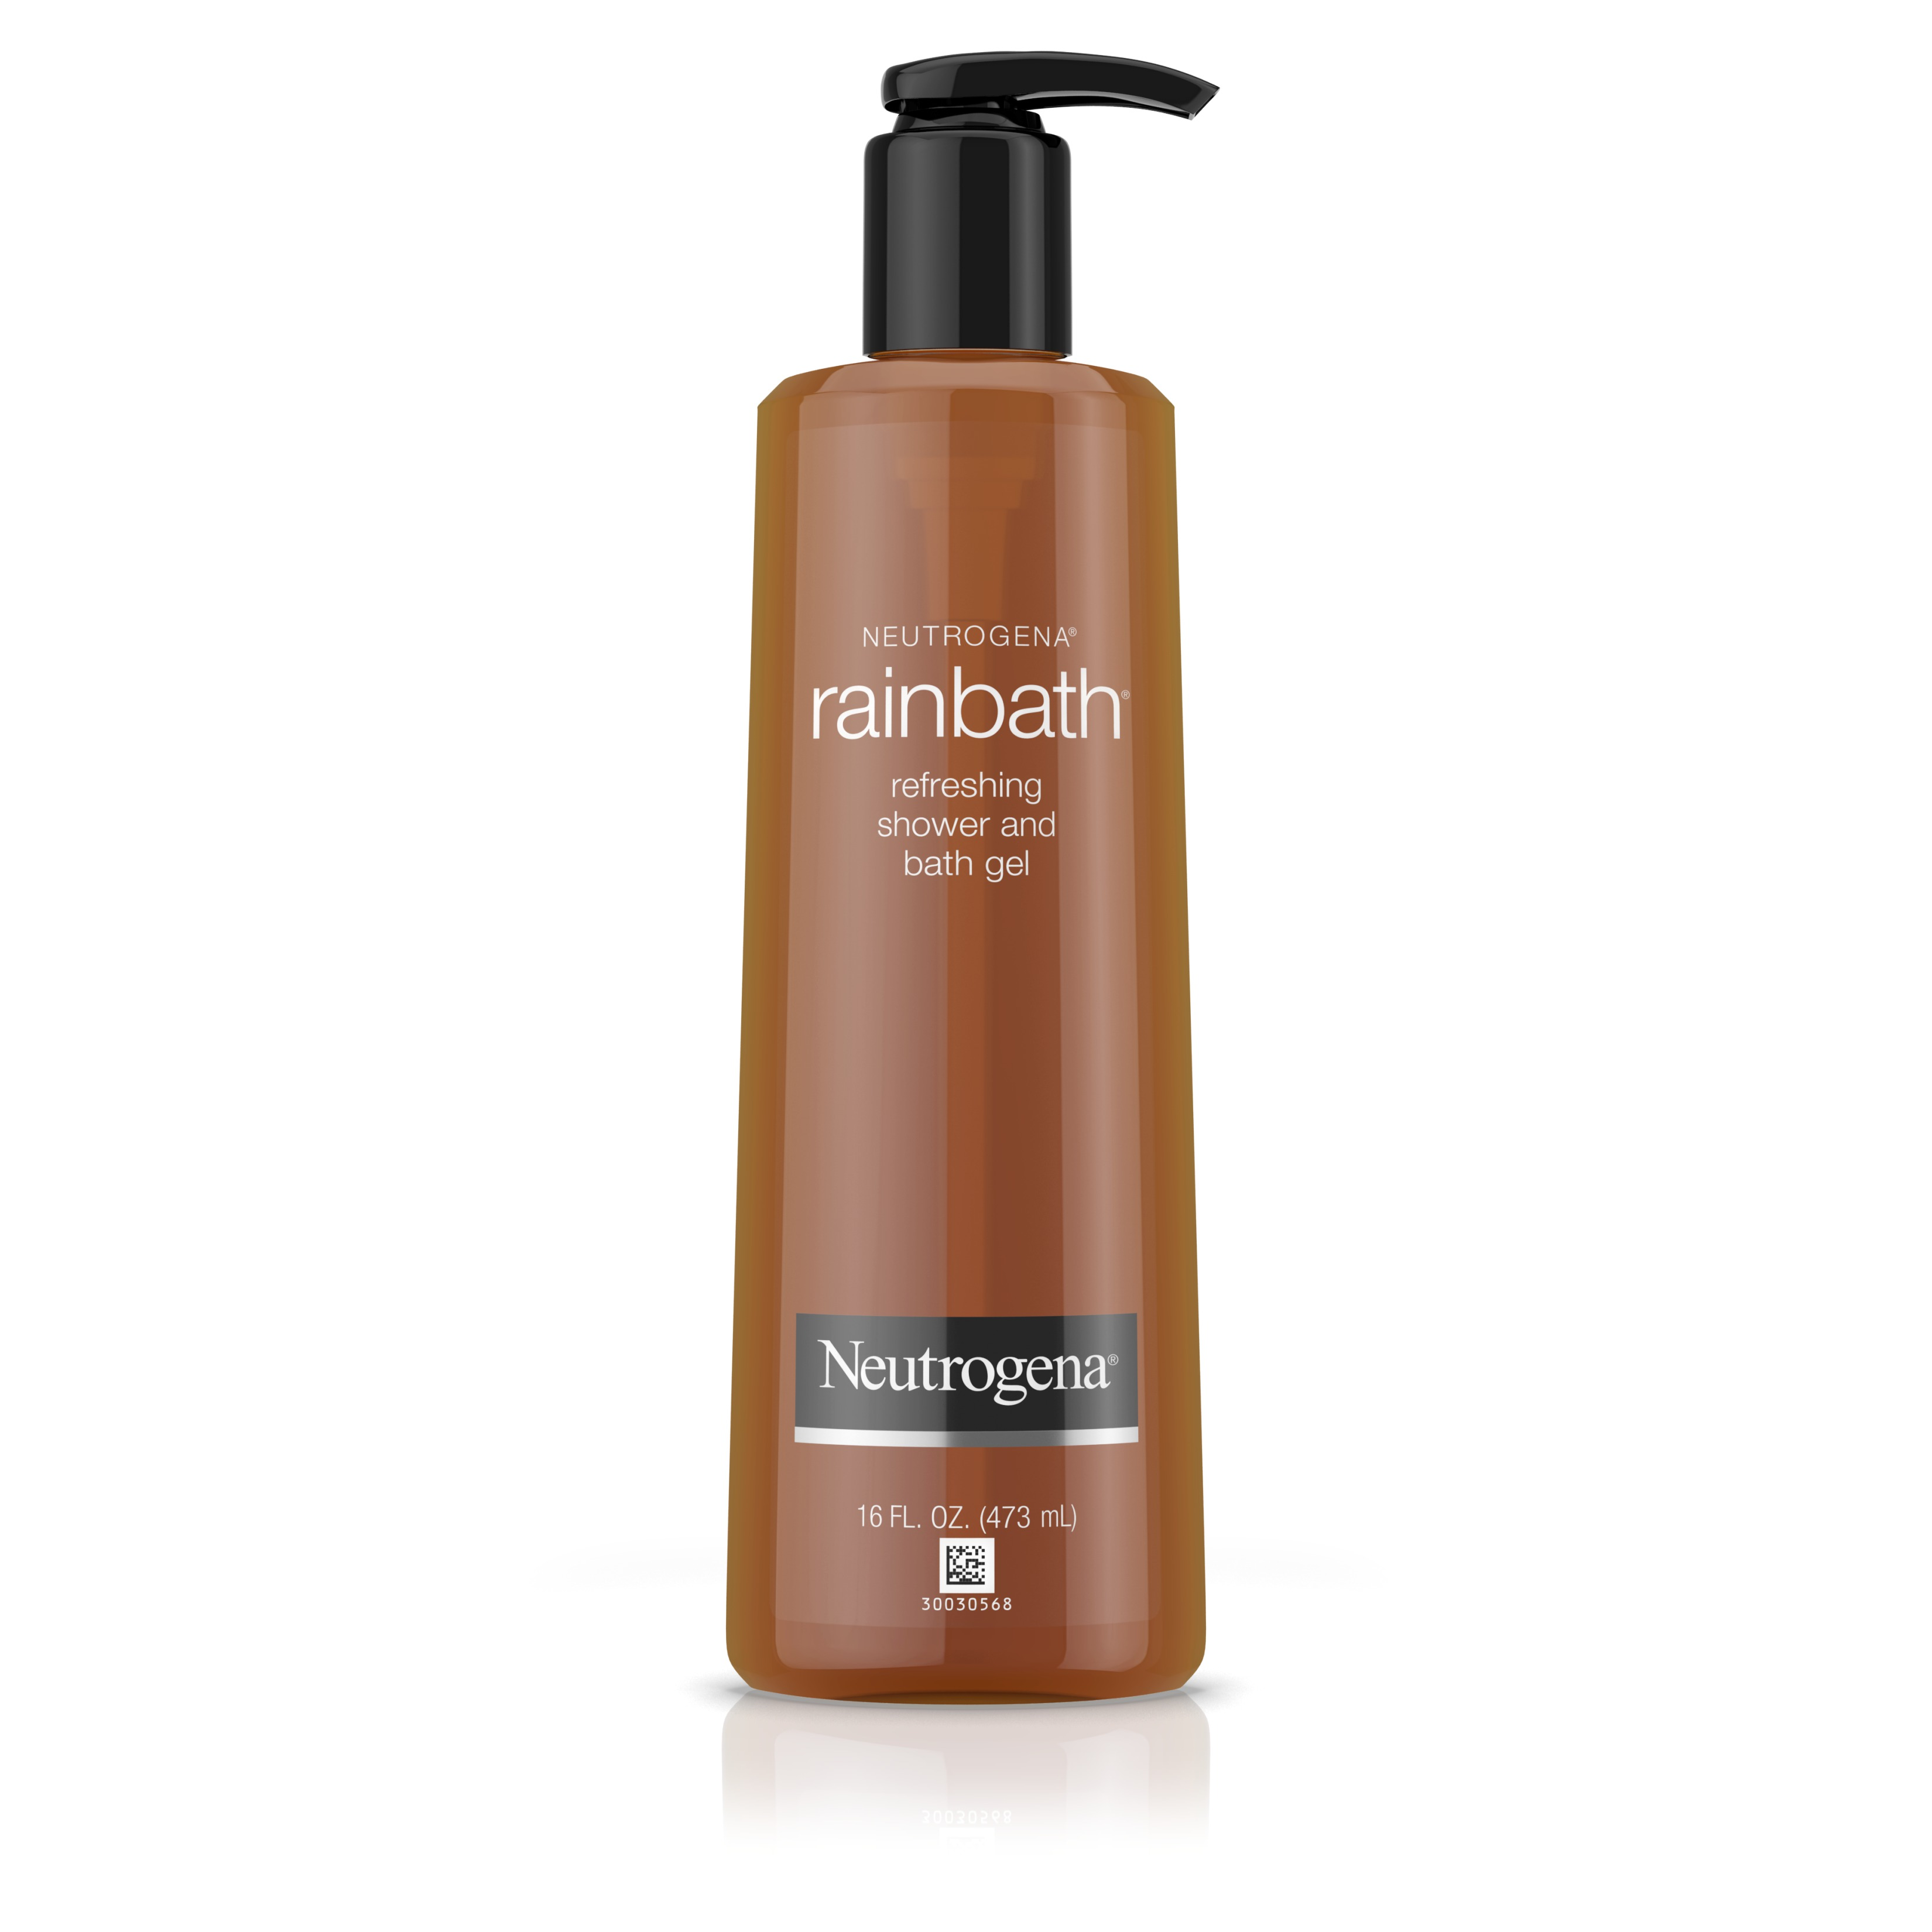 Neutrogena Rainbath Refreshing Shower And Bath Gel, Body Wash, Original, 16 Fl. Oz. by Johnson & Johnson